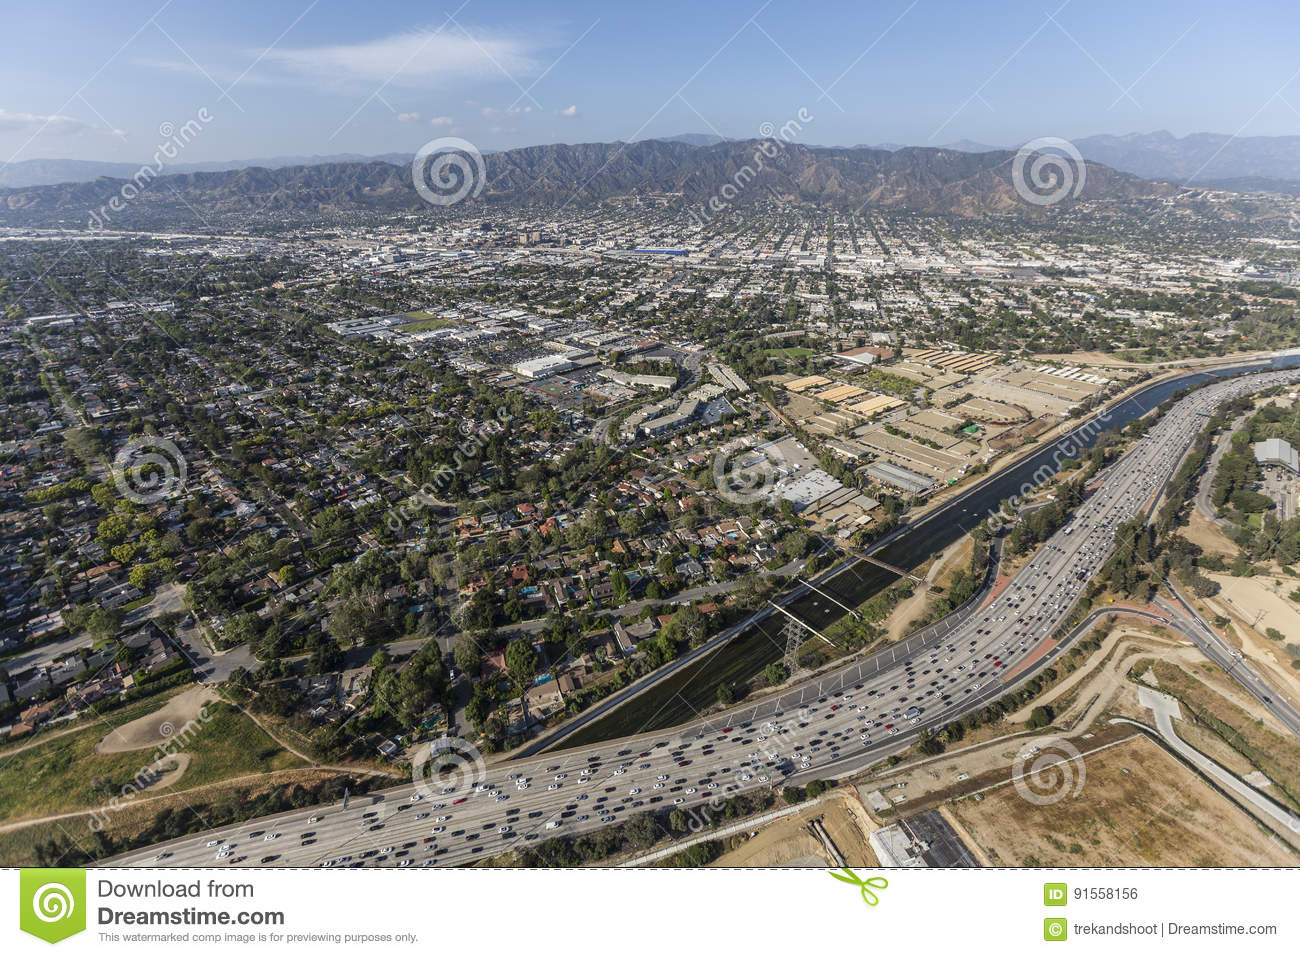 FileLA County Incorporated Areas Burbank Highlightedsvg Maps - Los angeles road map download